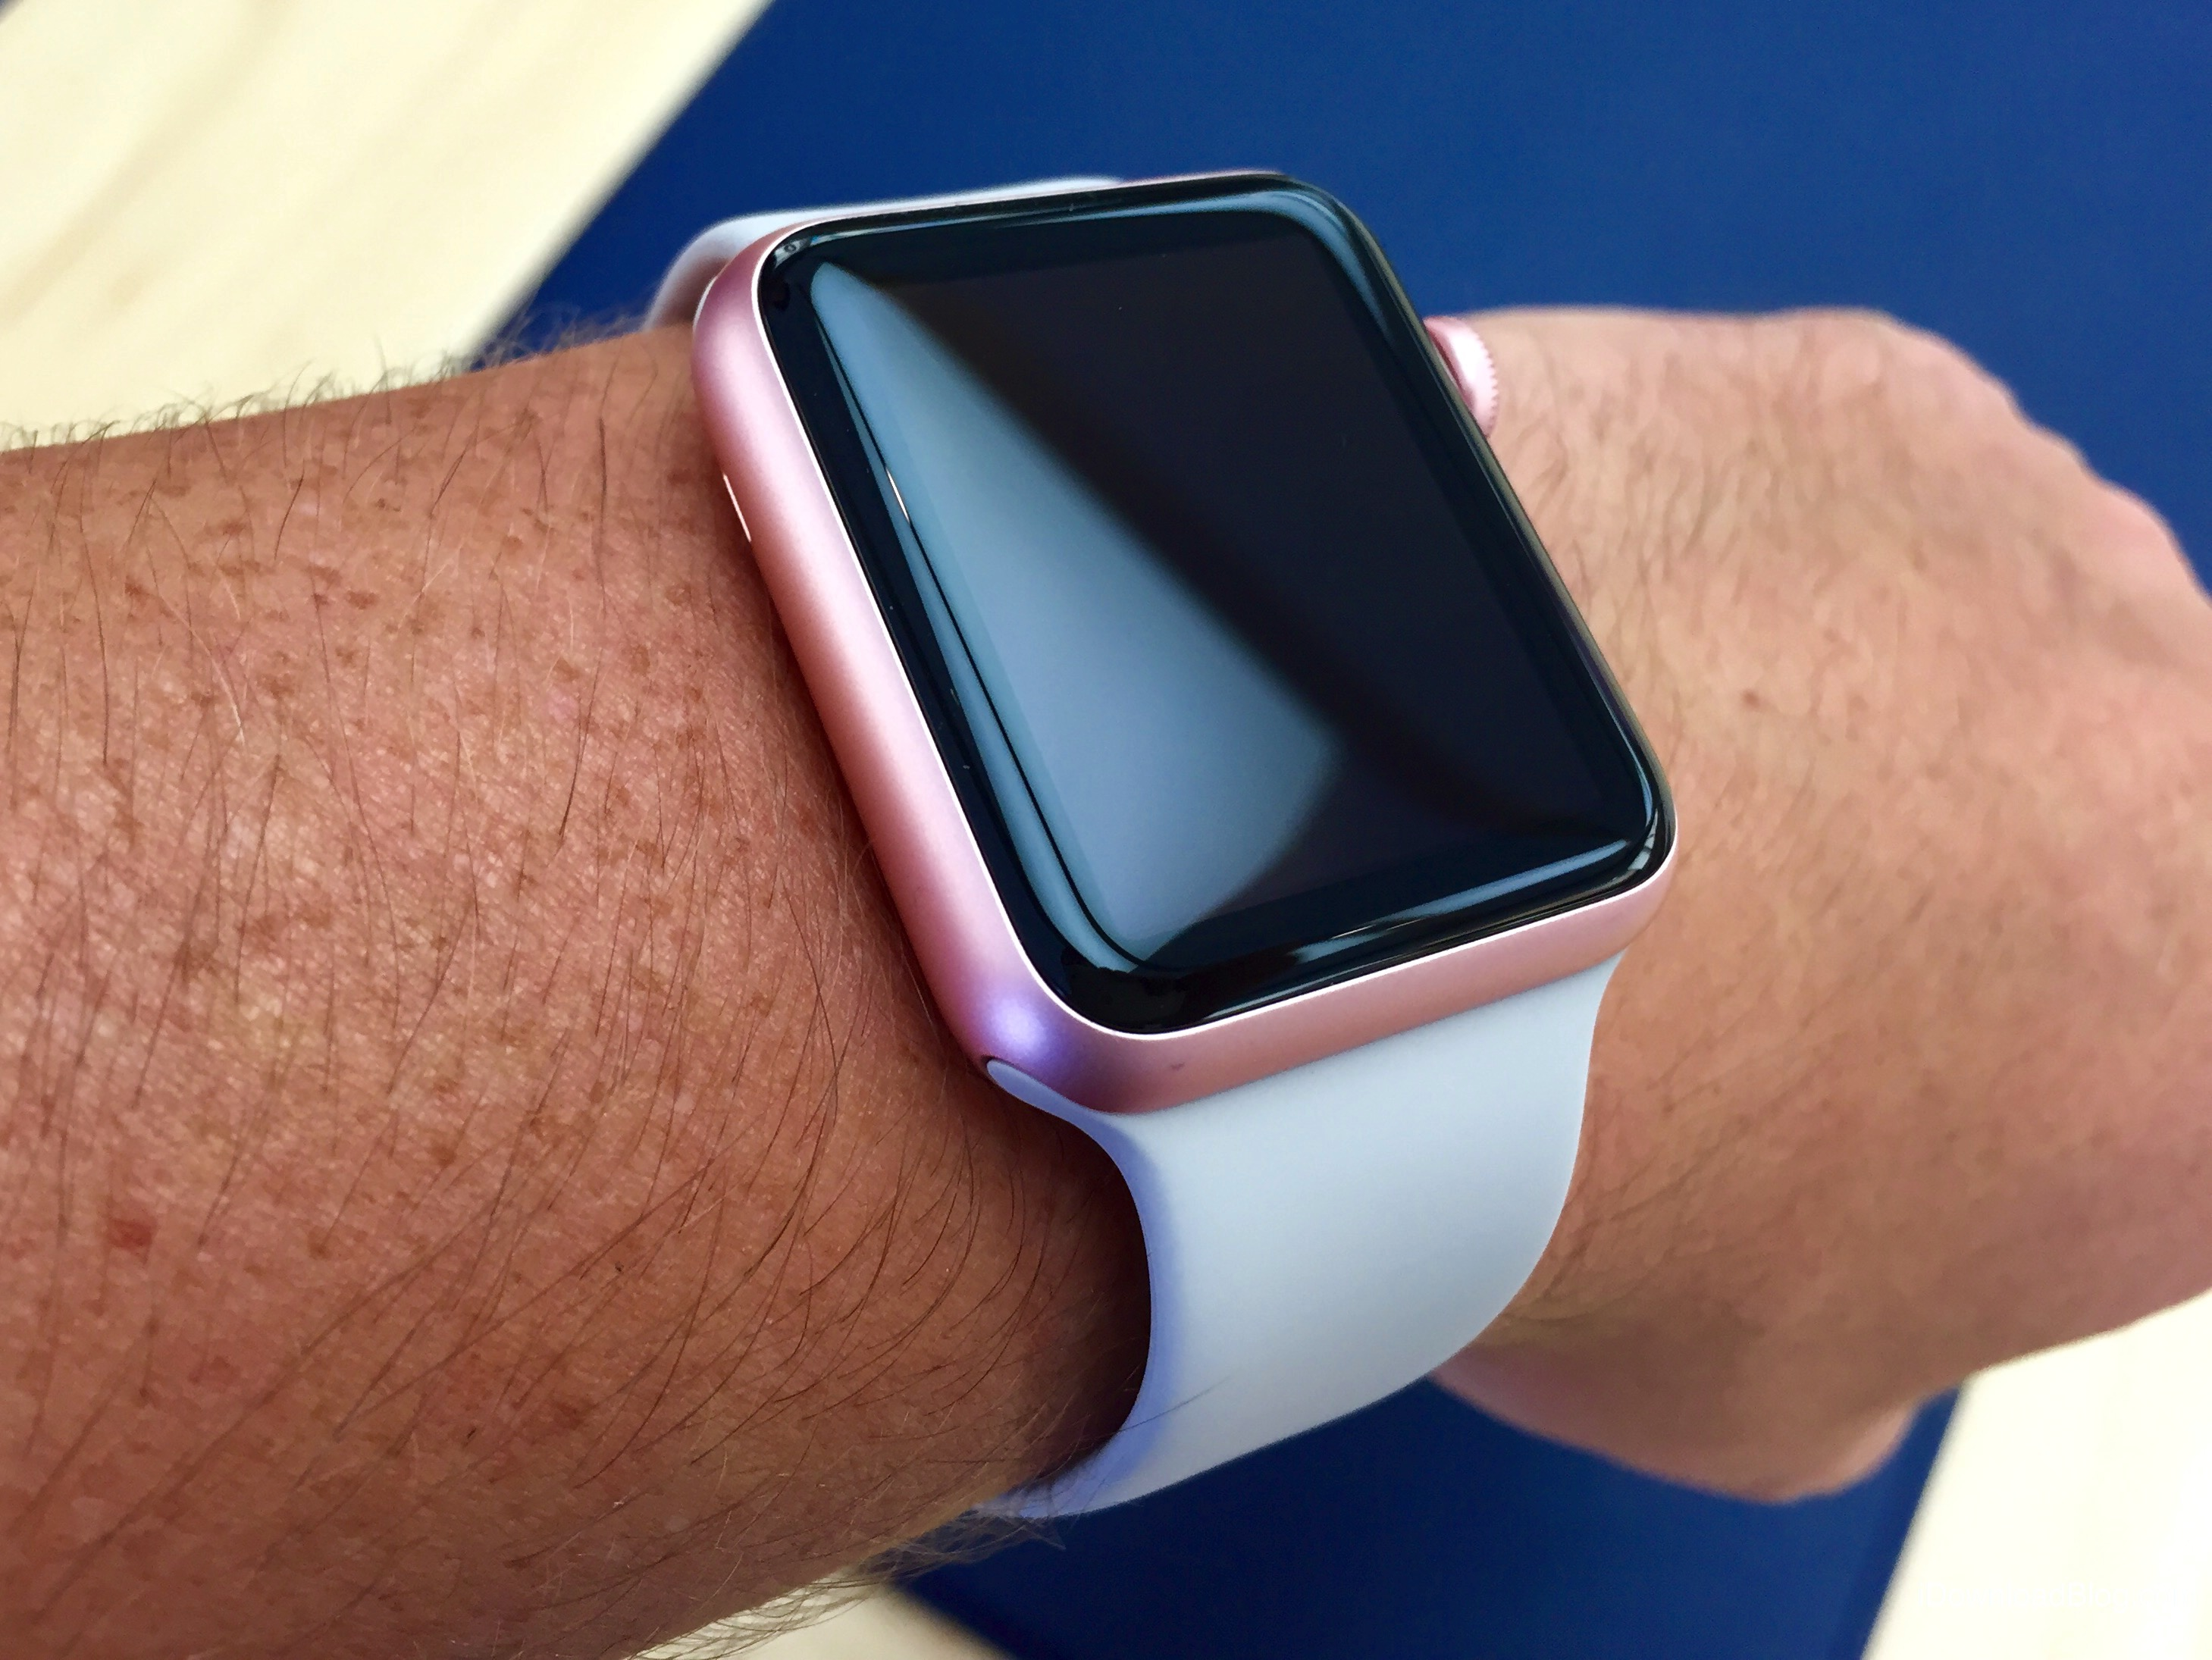 Rose Gold Aluminum Apple Watch Hands on 6